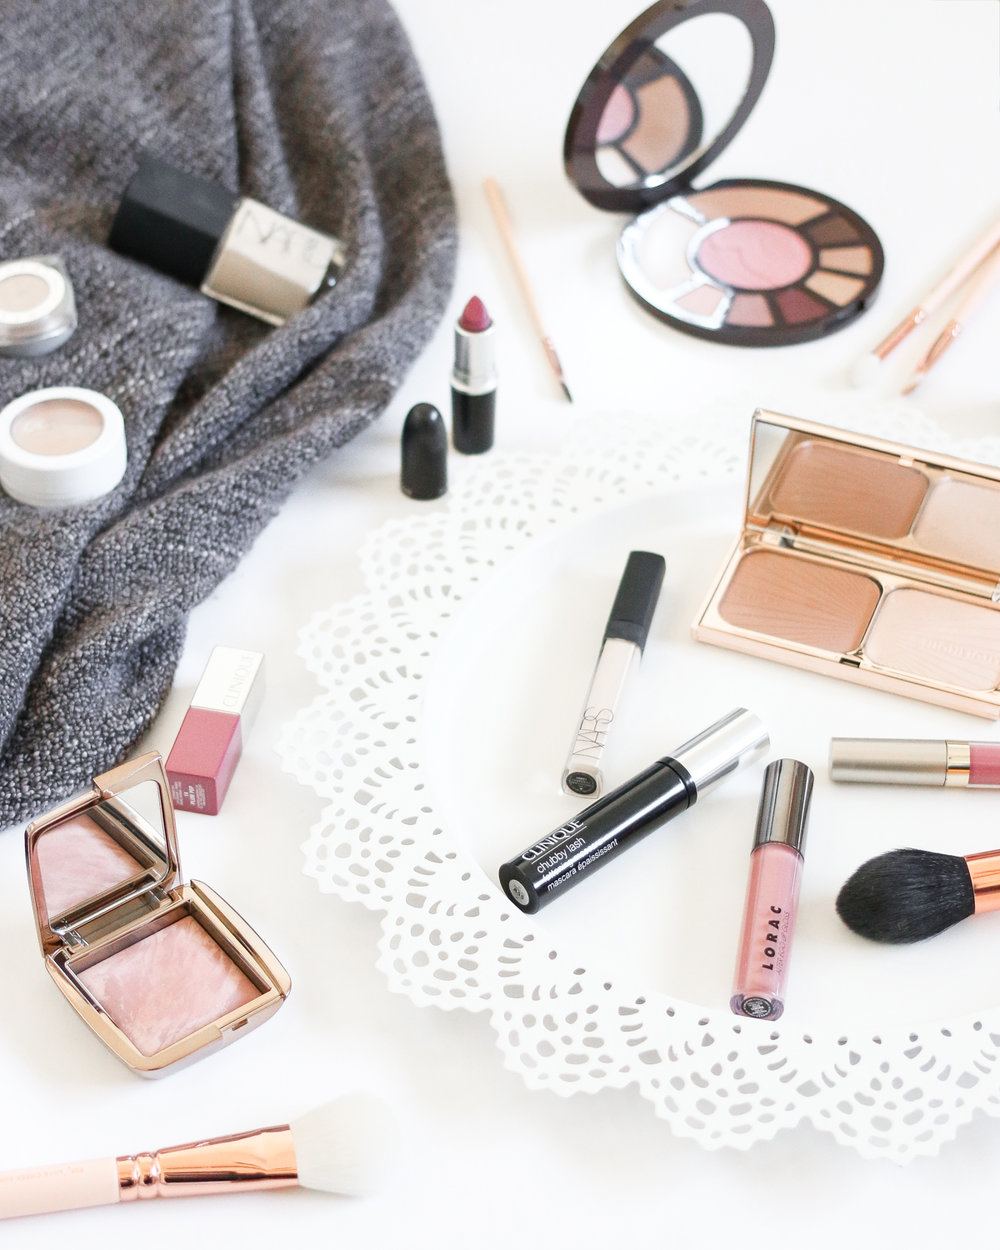 My Autumn Makeup Picks | A Girl, Obsessed